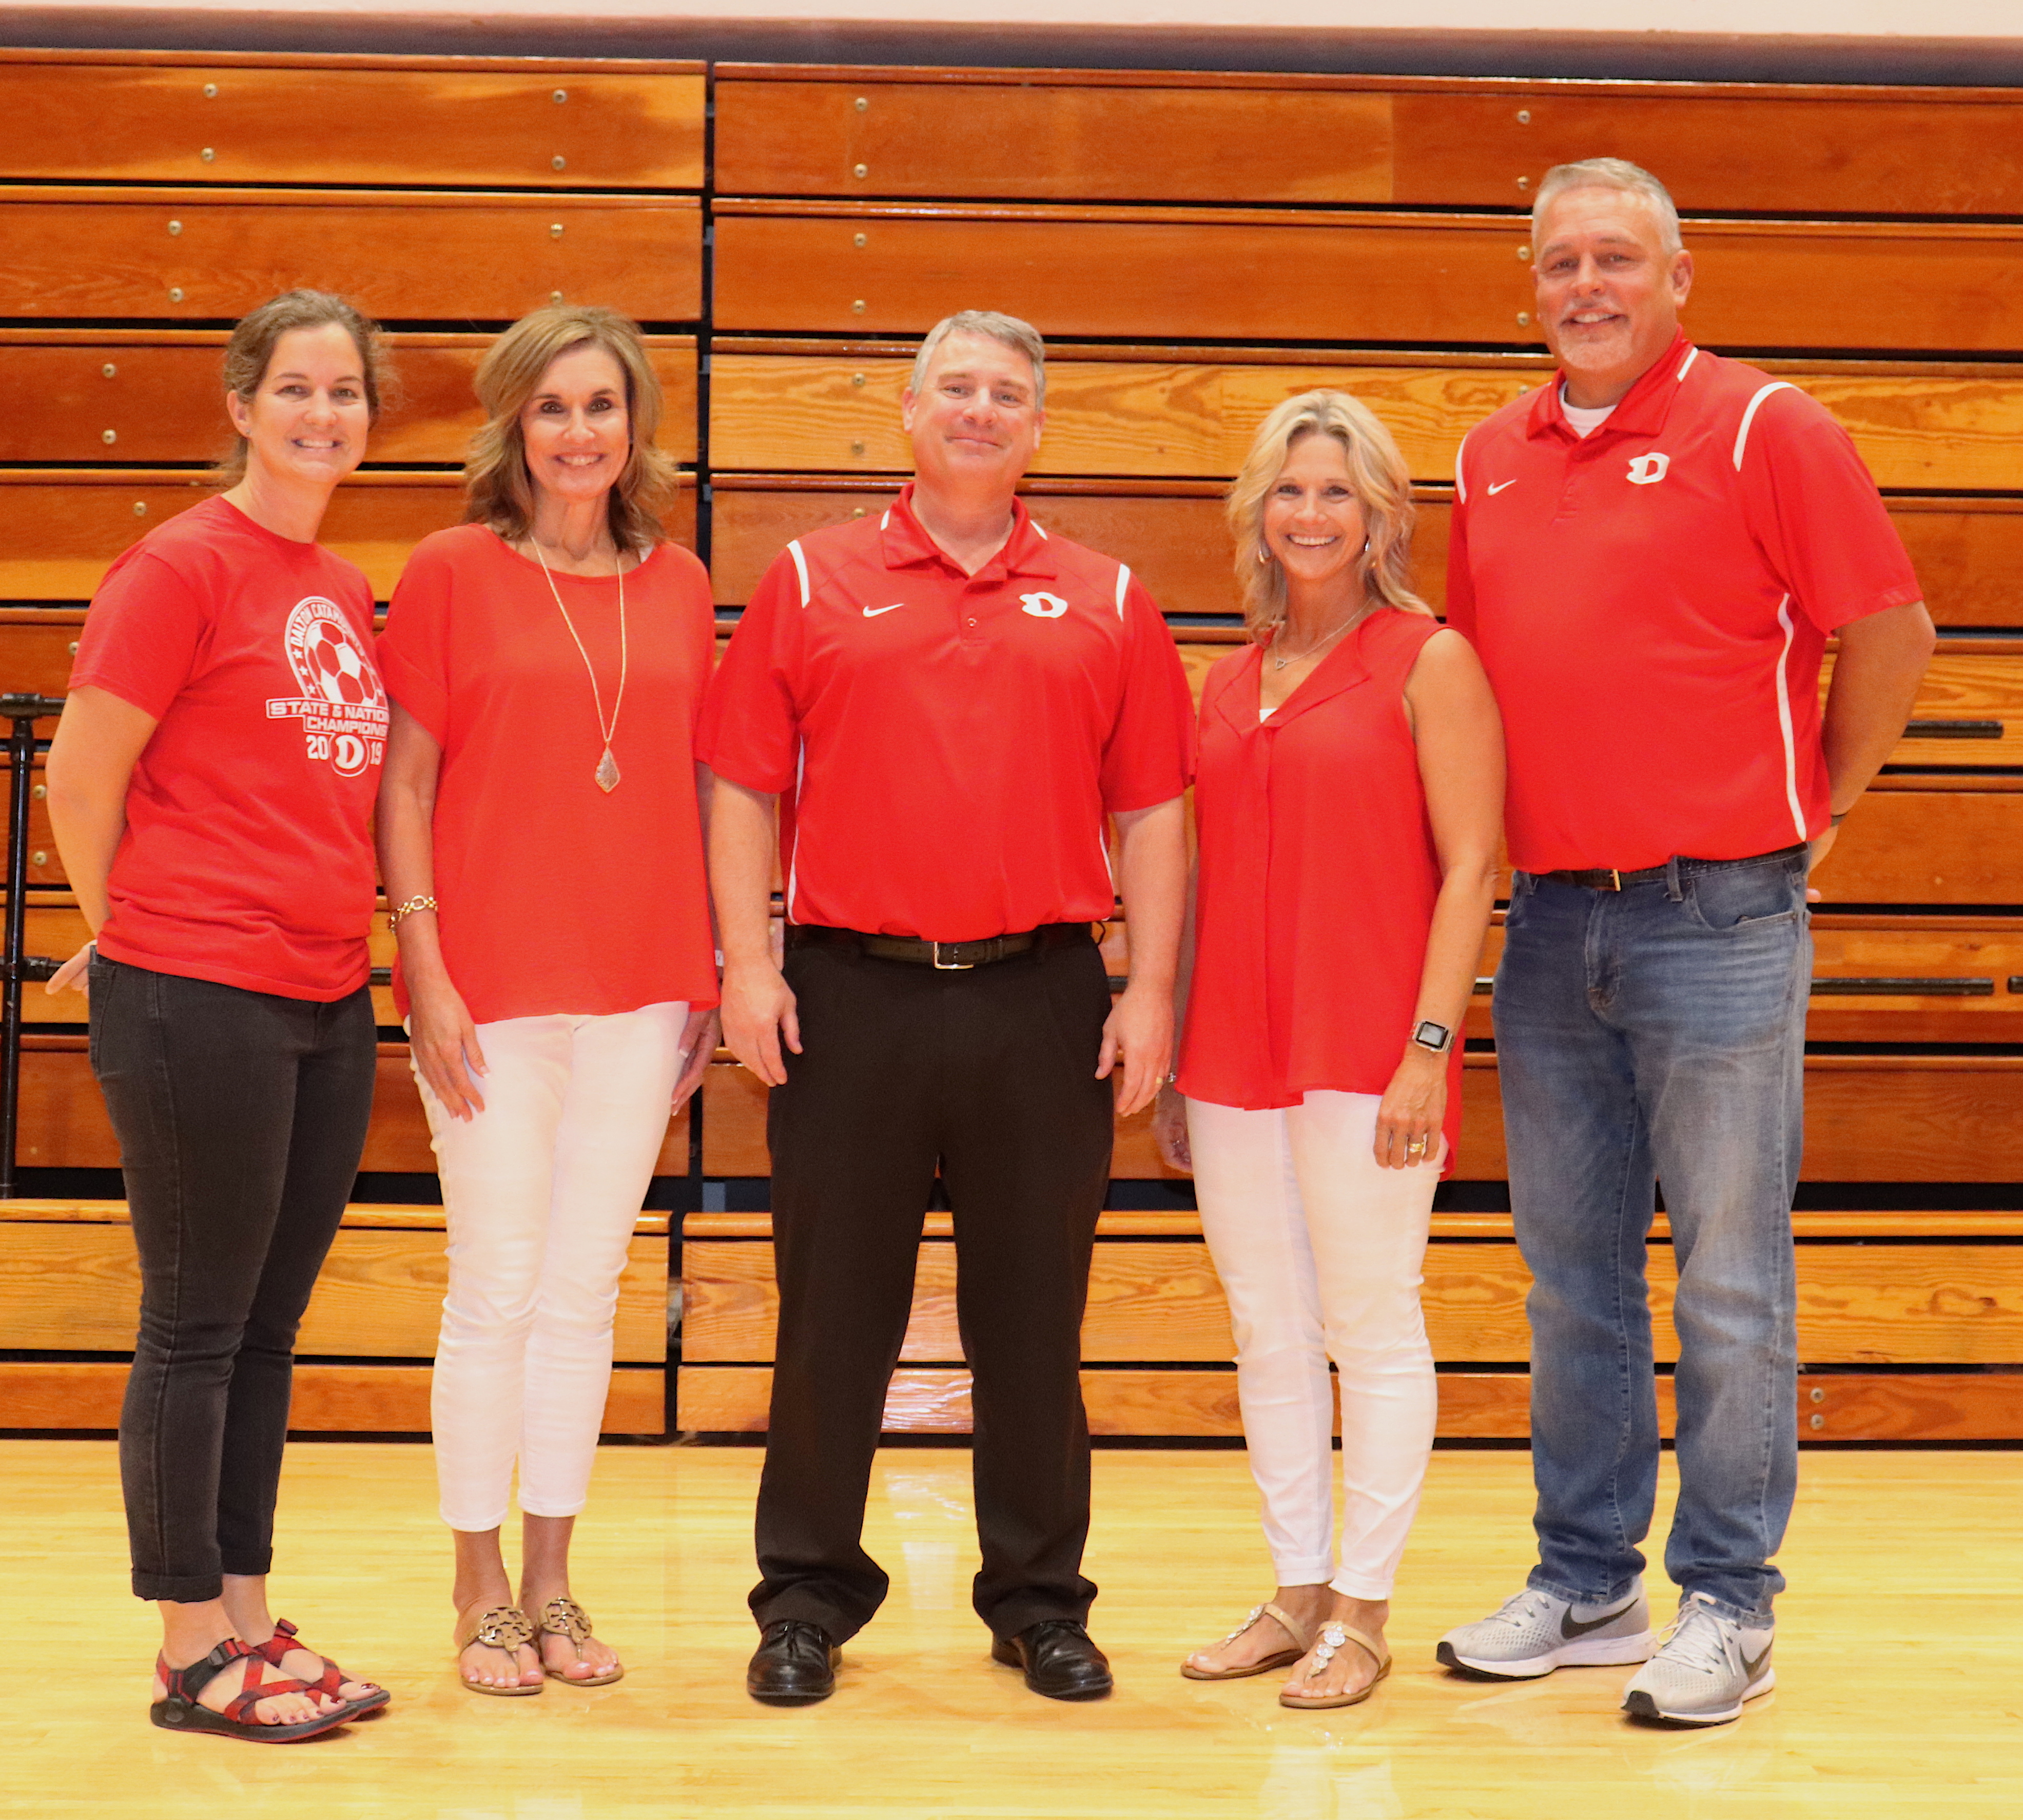 Dalton High Administration